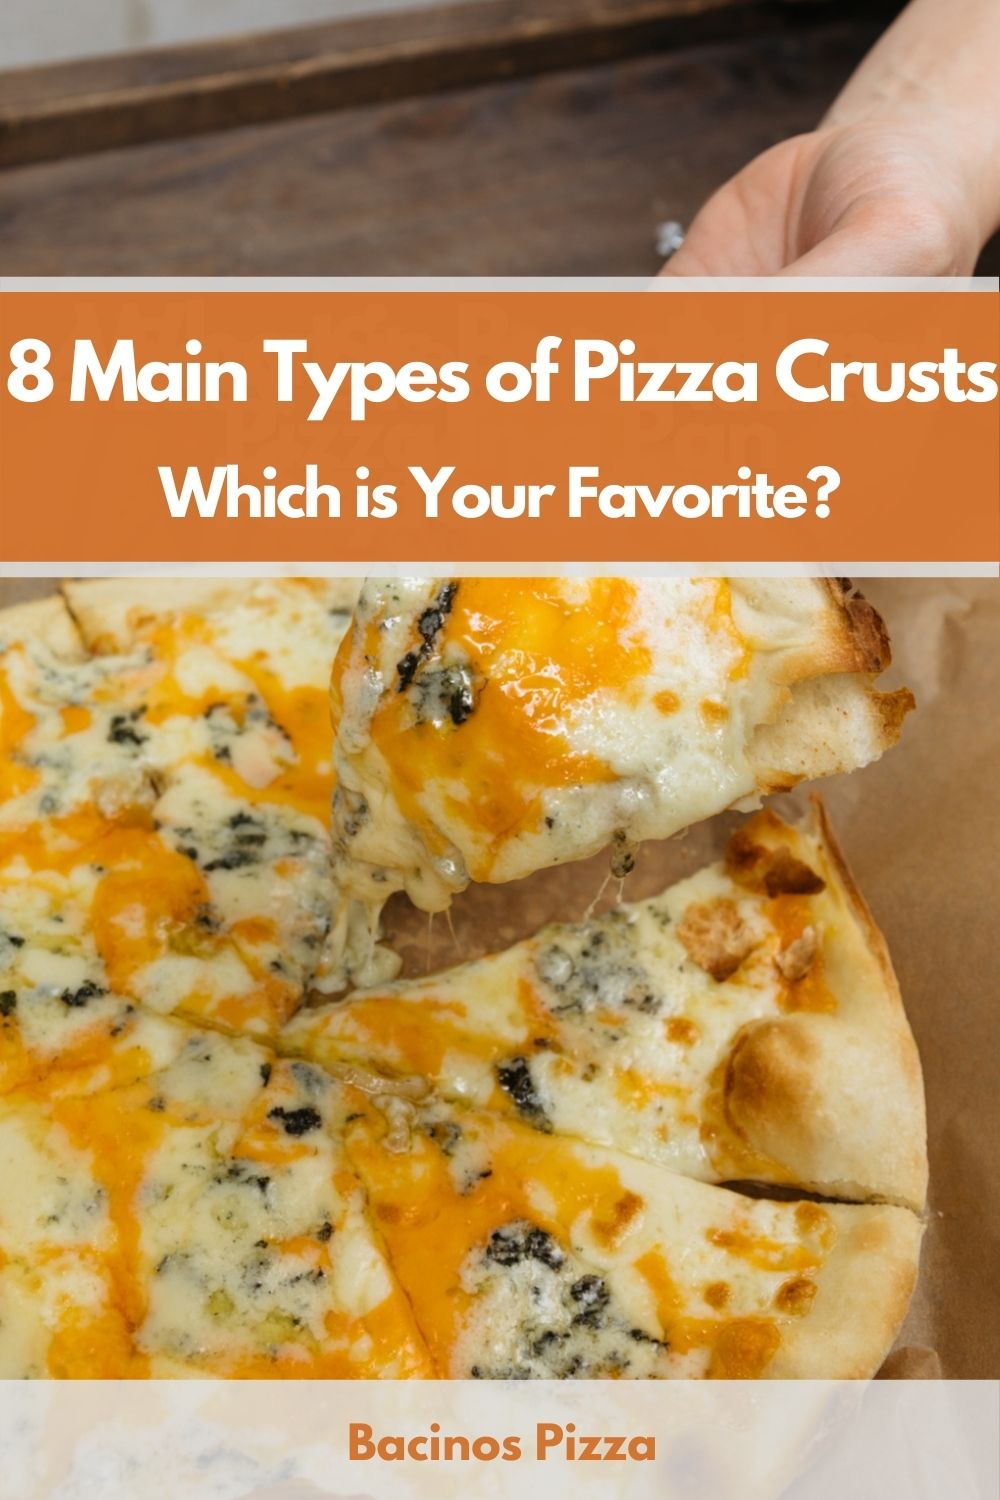 8 Main Types of Pizza Crusts Which is Your Favorite pin 2